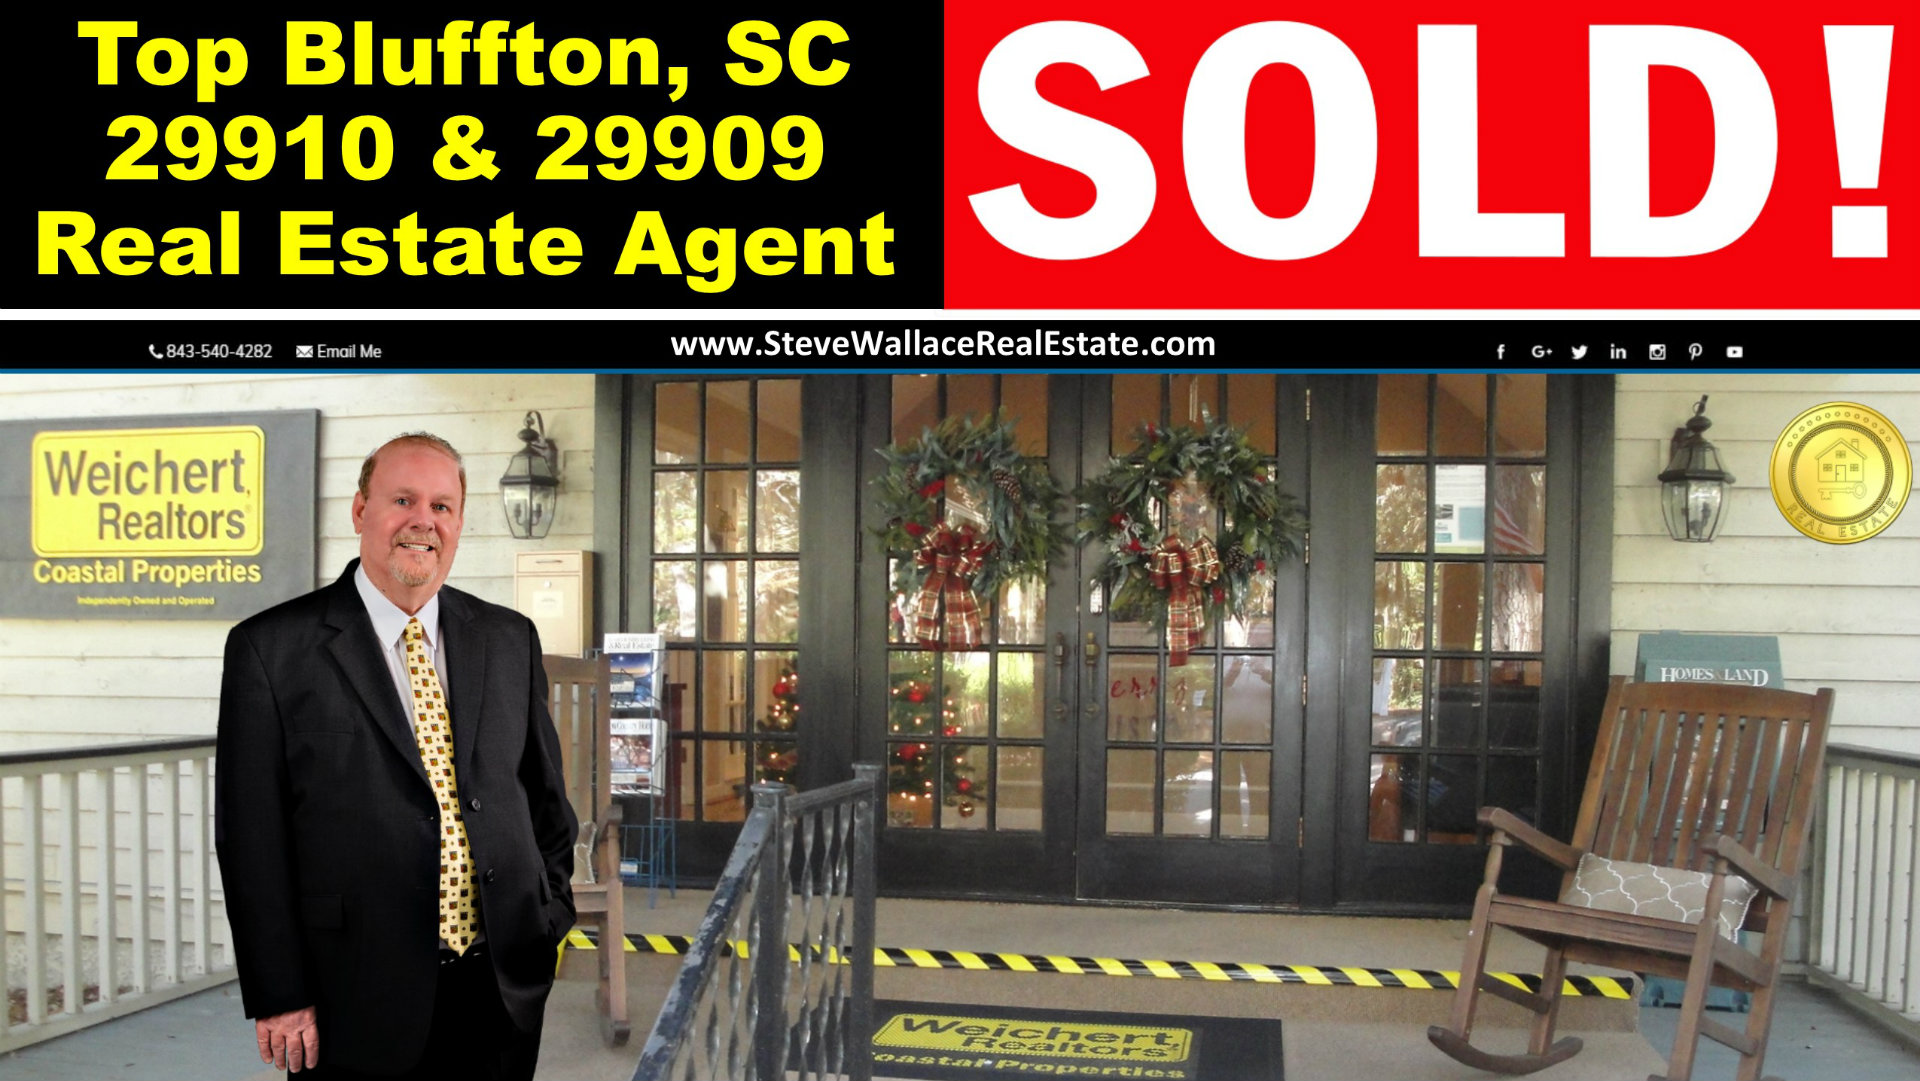 top, local, real estate agents, bluffton, sc, 29910, 29909